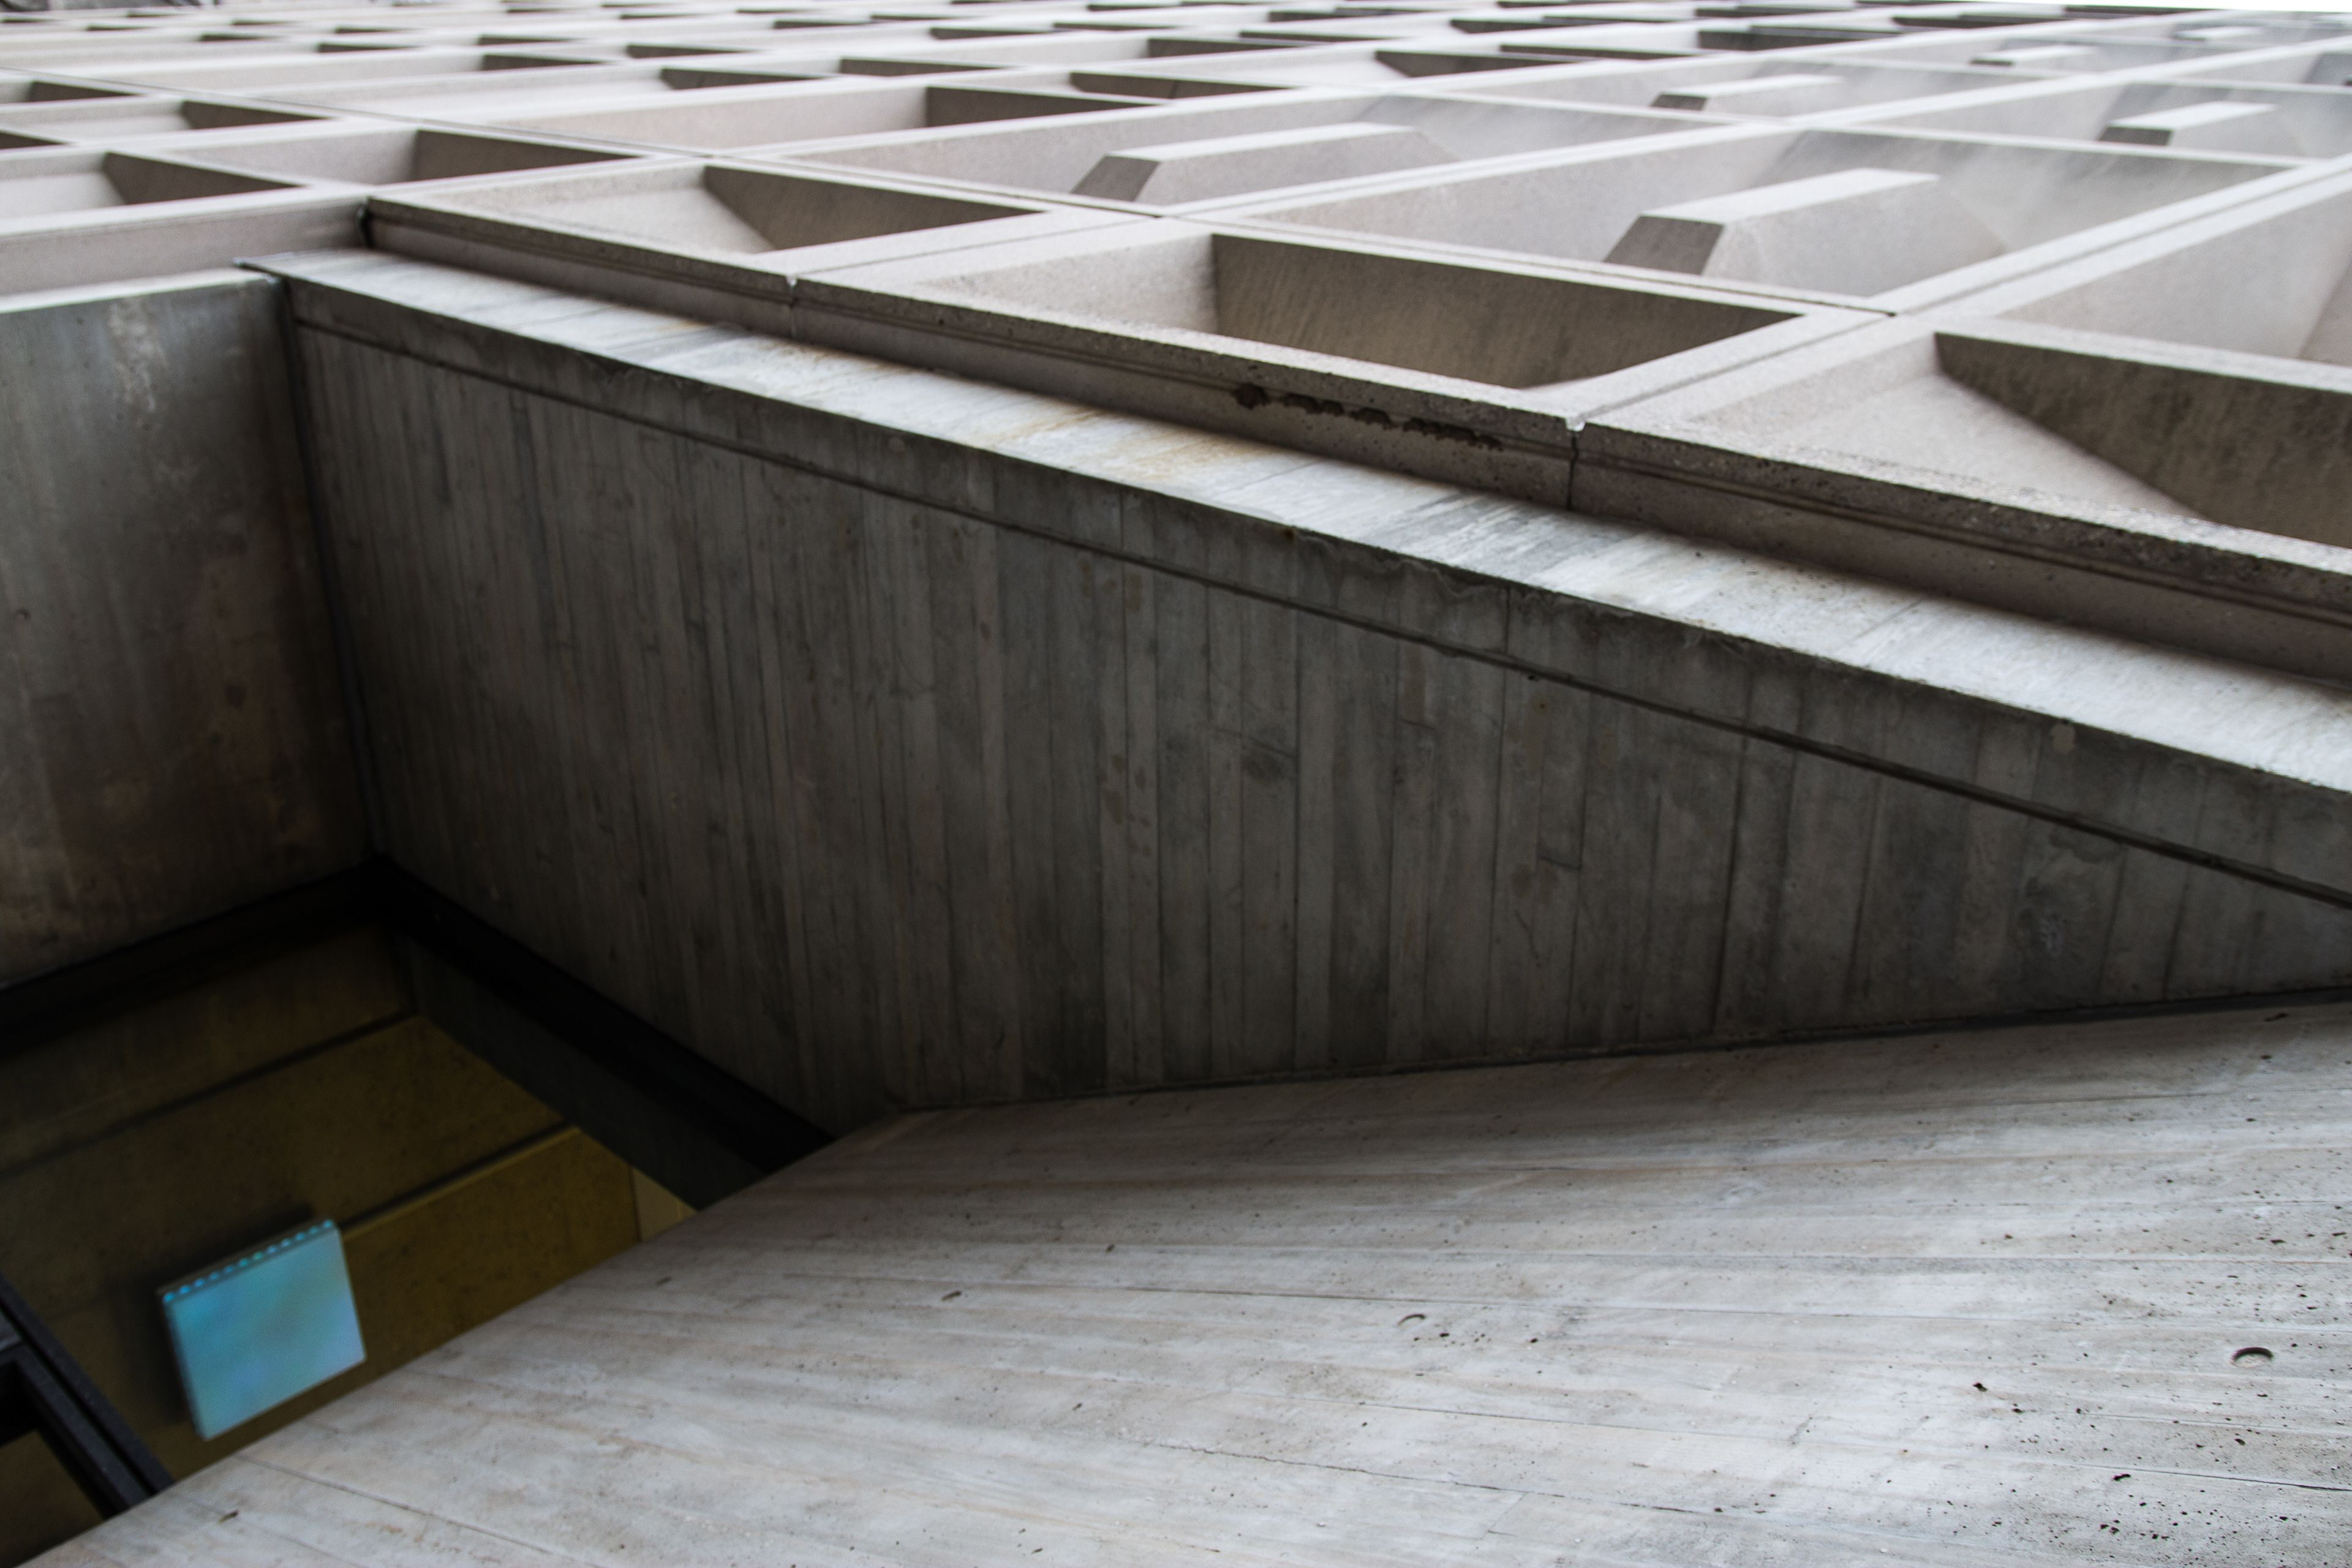 A modern concrete building, photographed at an angle that makes it unclear which way is up.